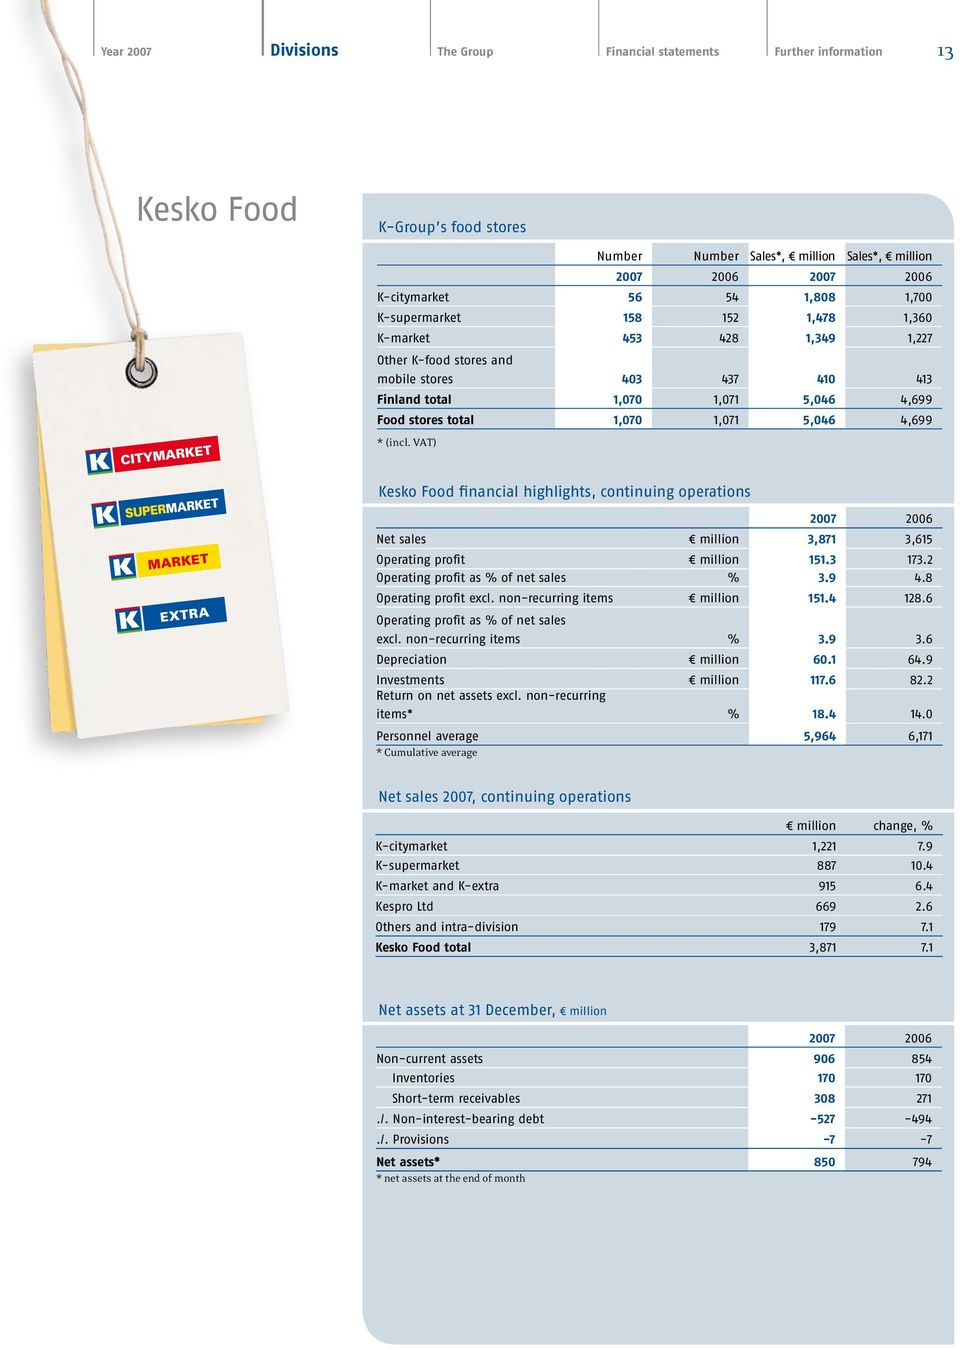 4,699 * (incl. VAT) Kesko Food financial highlights, continuing operations 2007 2006 Net sales million 3,871 3,615 Operating profit million 151.3 173.2 Operating profit as % of net sales % 3.9 4.